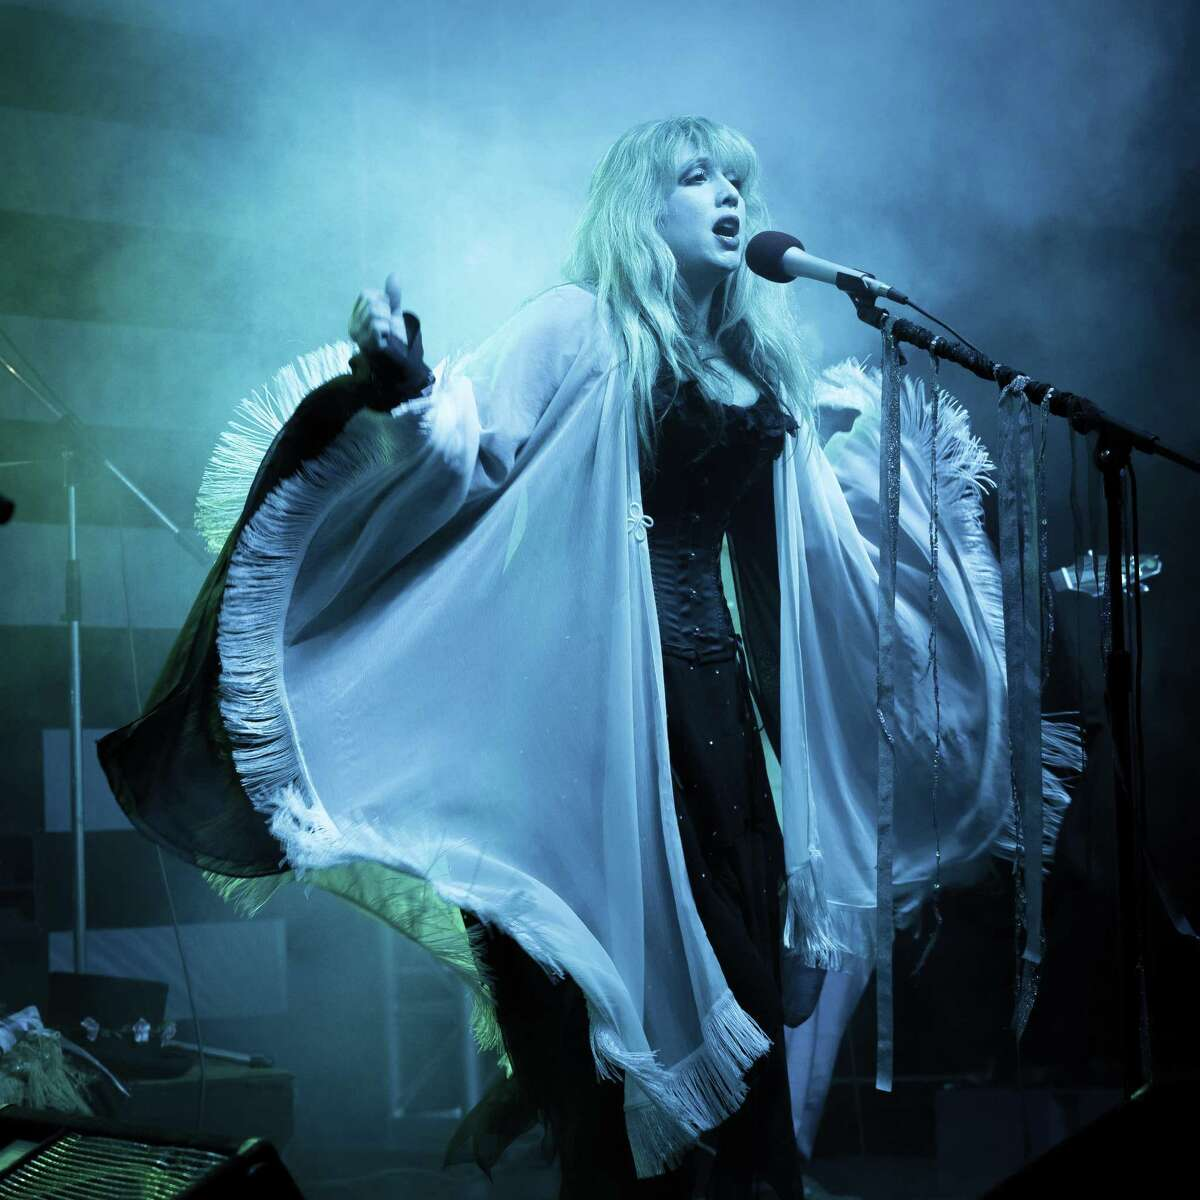 Nightbird is a Stevie Nicks and Fleetwood Mac tribute band scheduled to perform Nov. 6 at Main Street Crossing in Tomball.